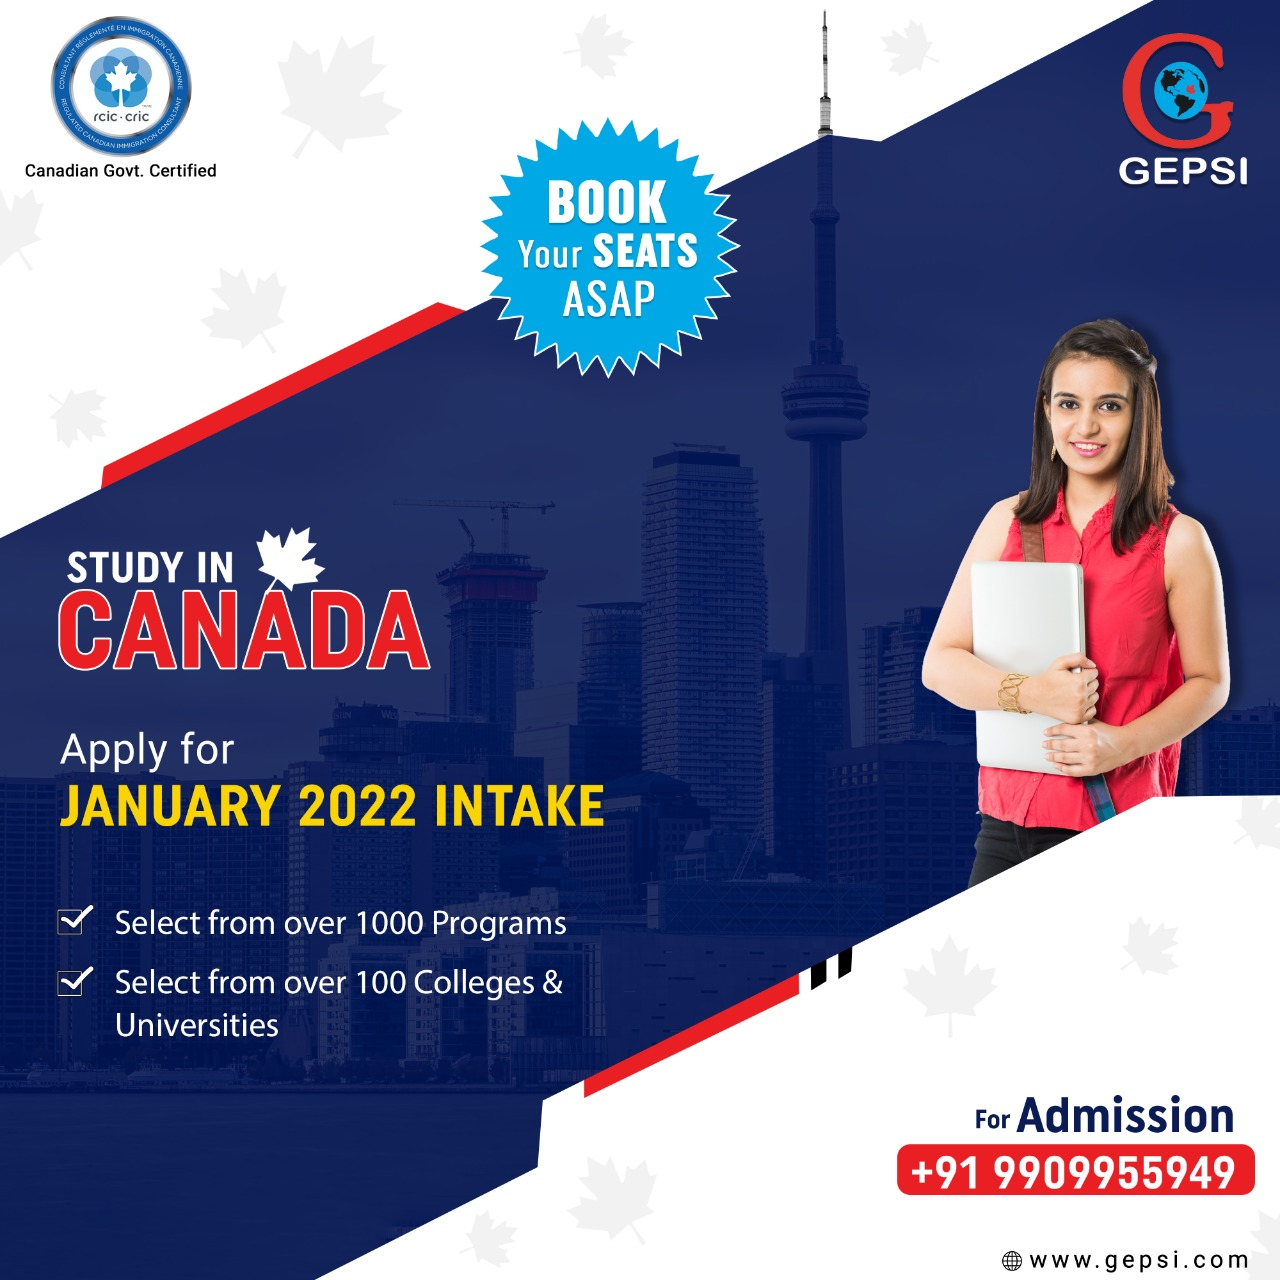 Apply for January 2022 Intake